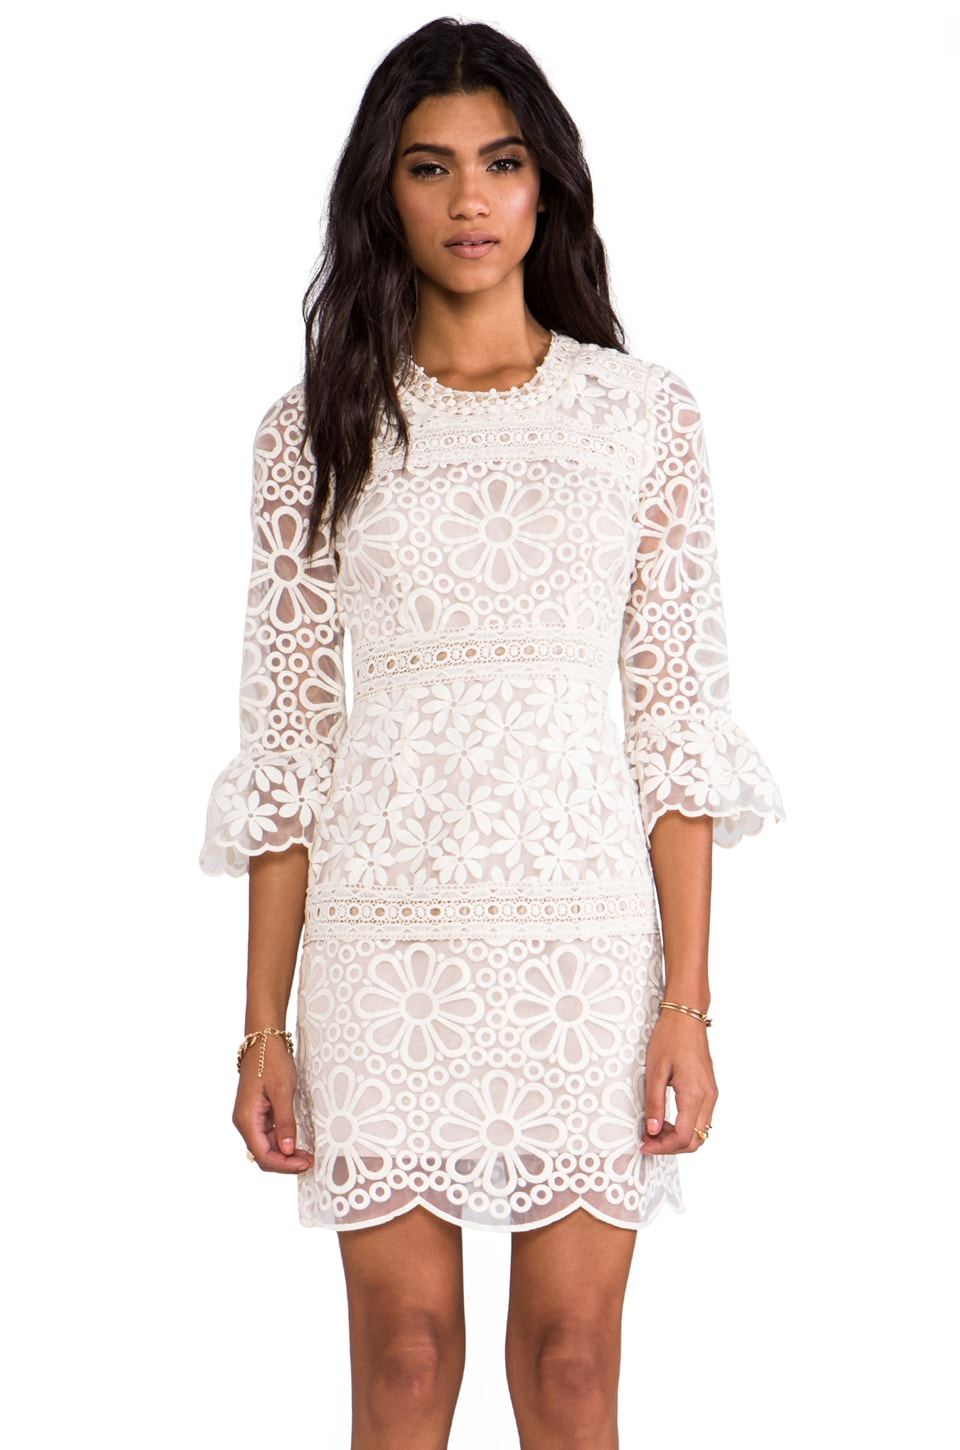 Anna Sui RUNWAY Nouvelle Vague Daisy Embroidered Organza Dress in Cream